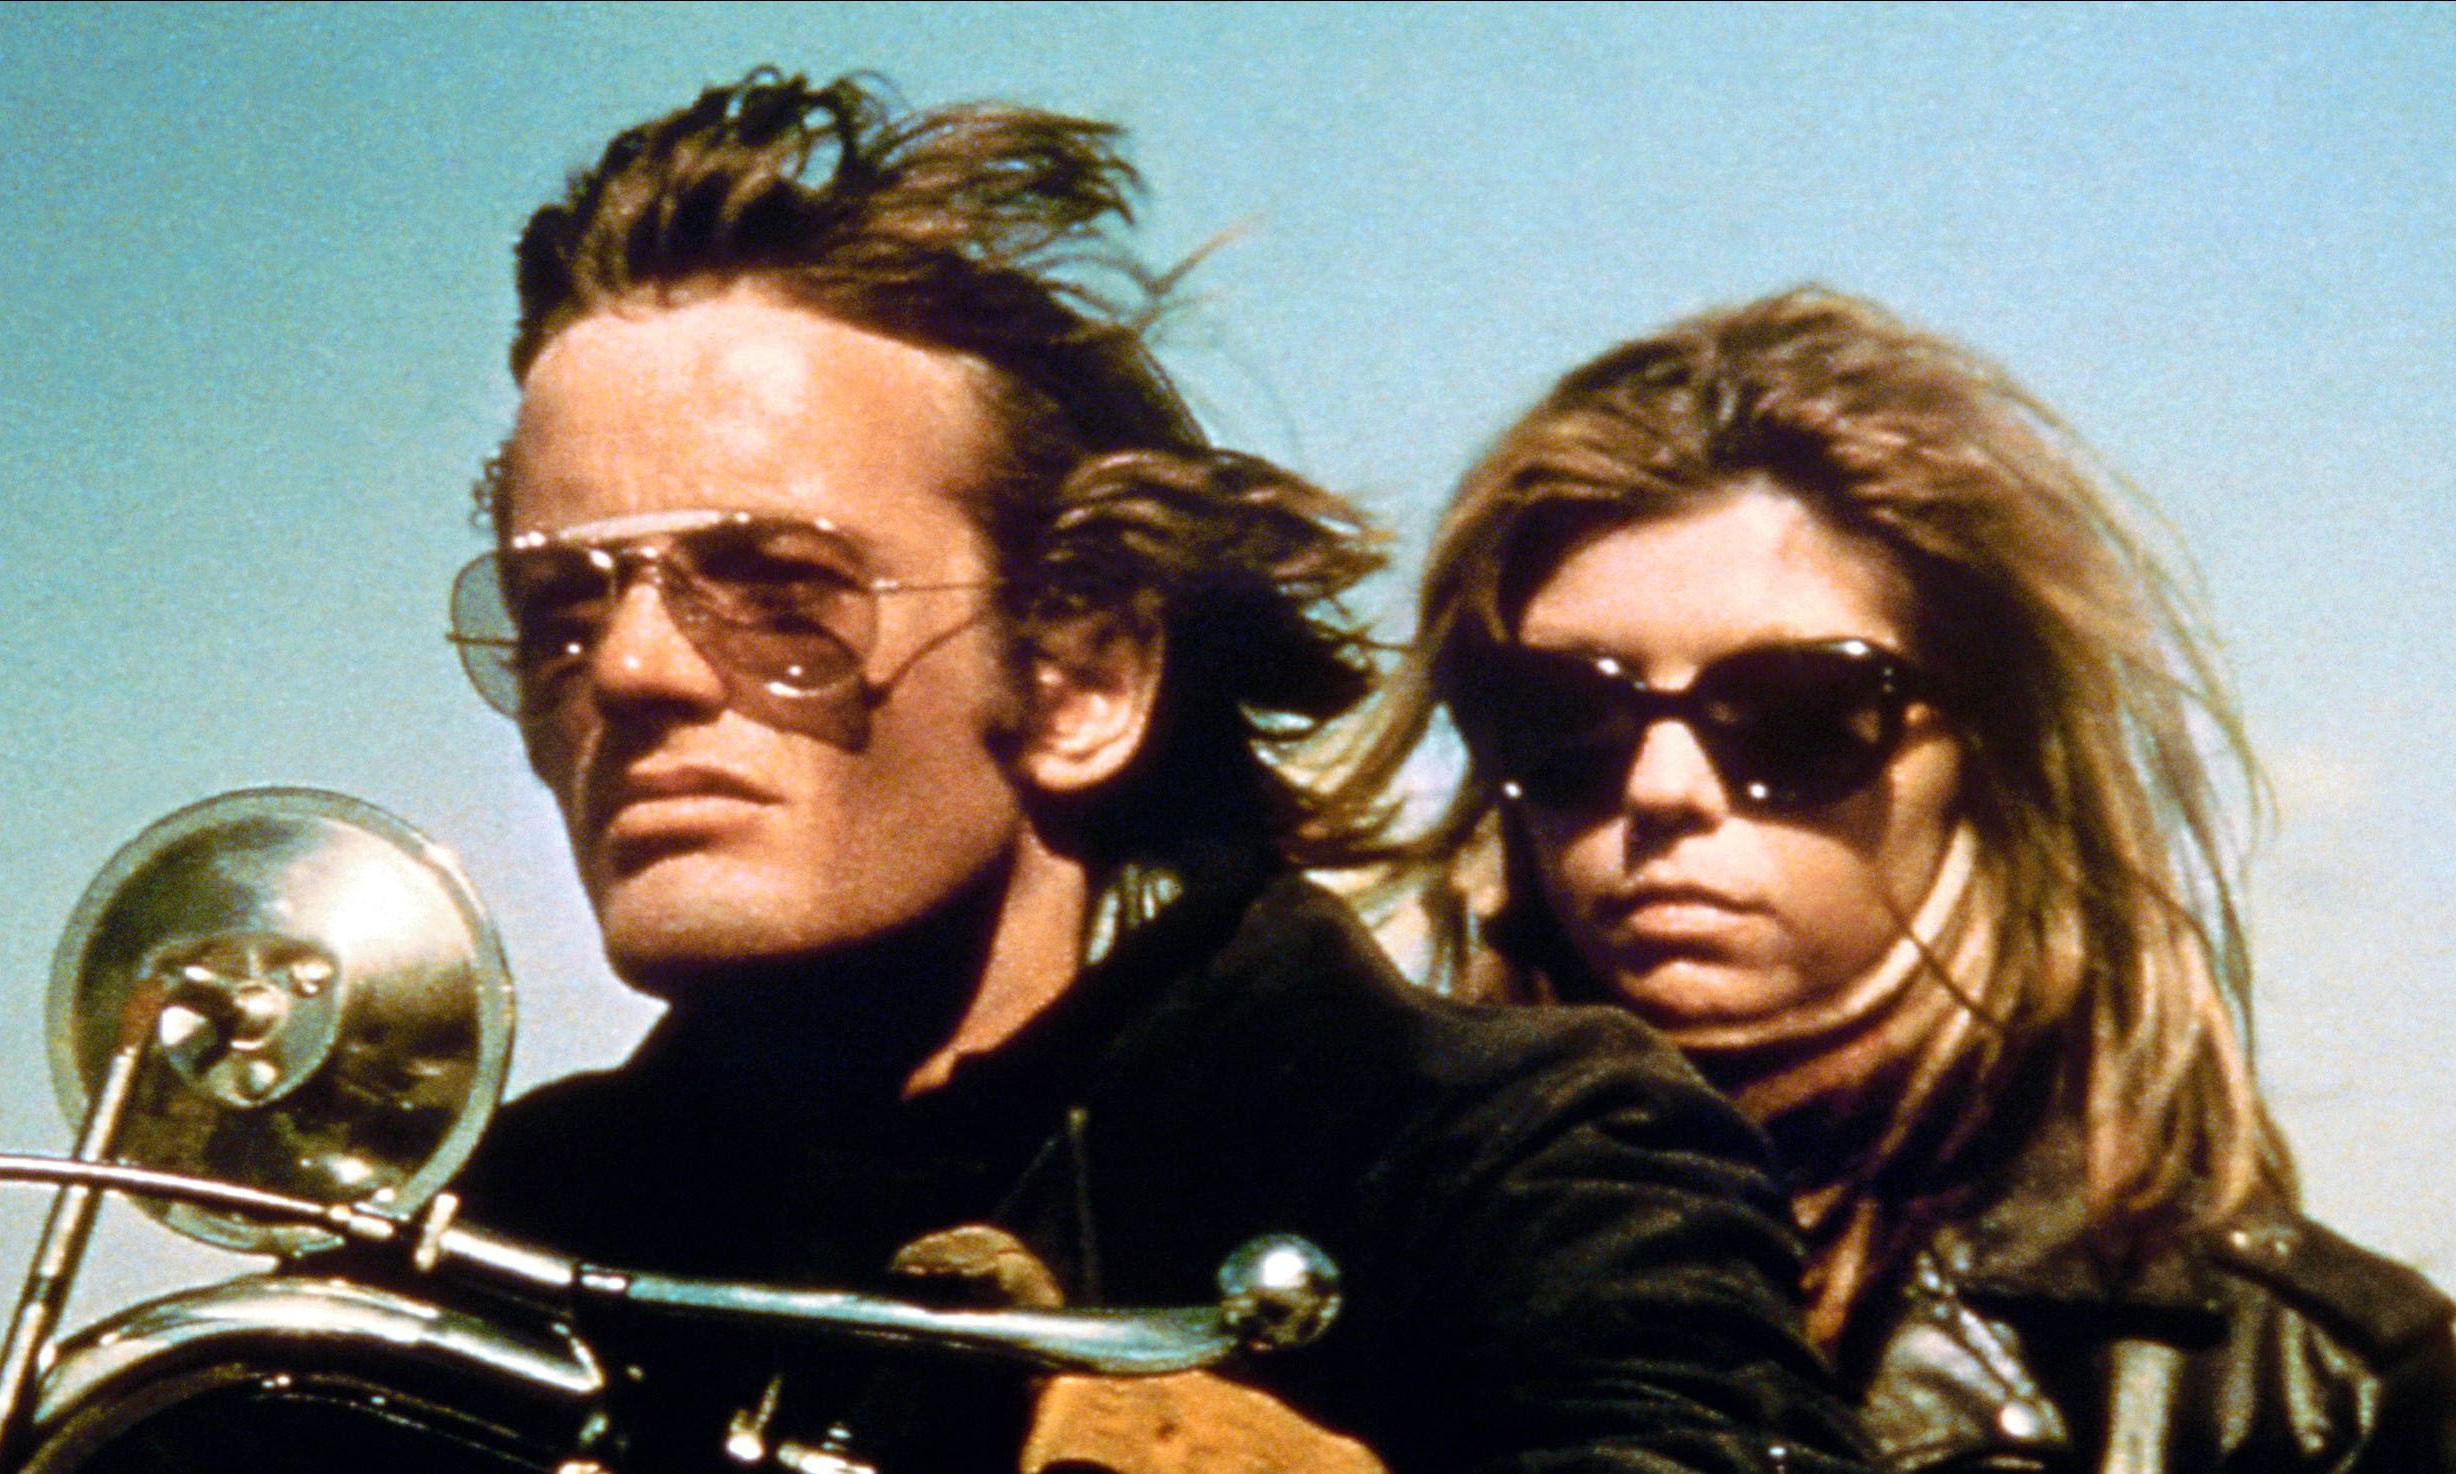 Peter Fonda remembered at the Oscars ceremony